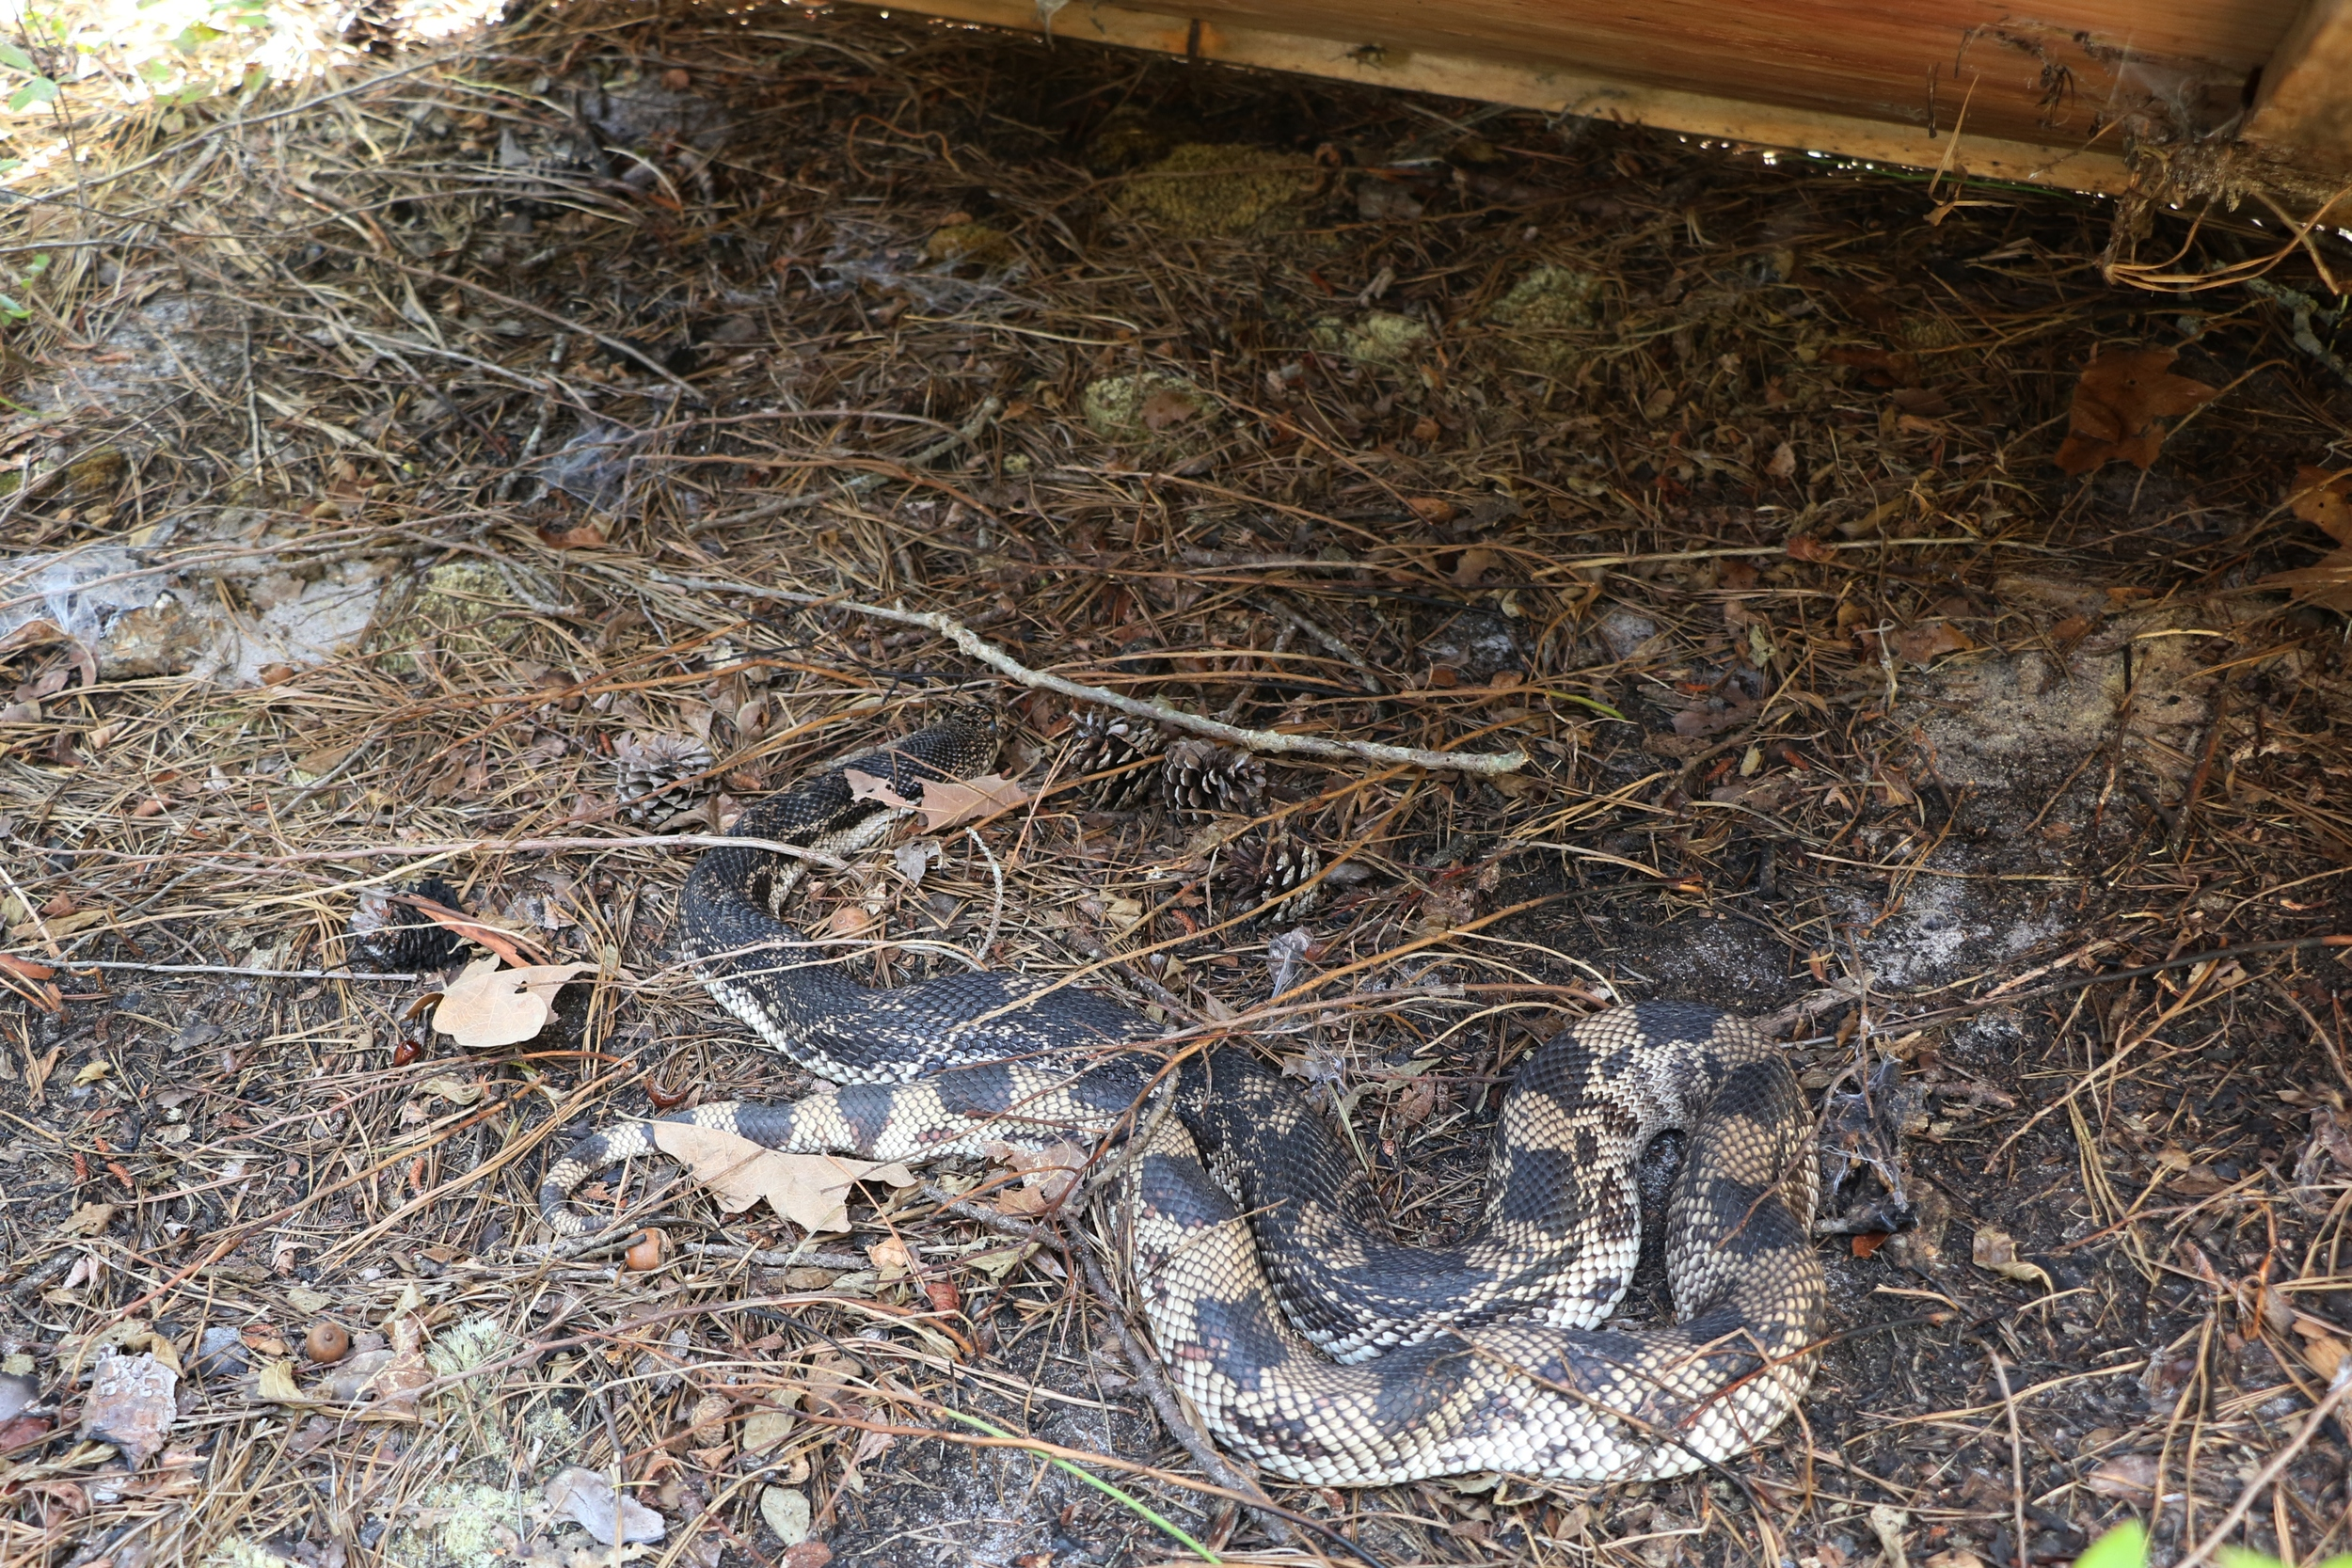 Northern PInesnake as flipped